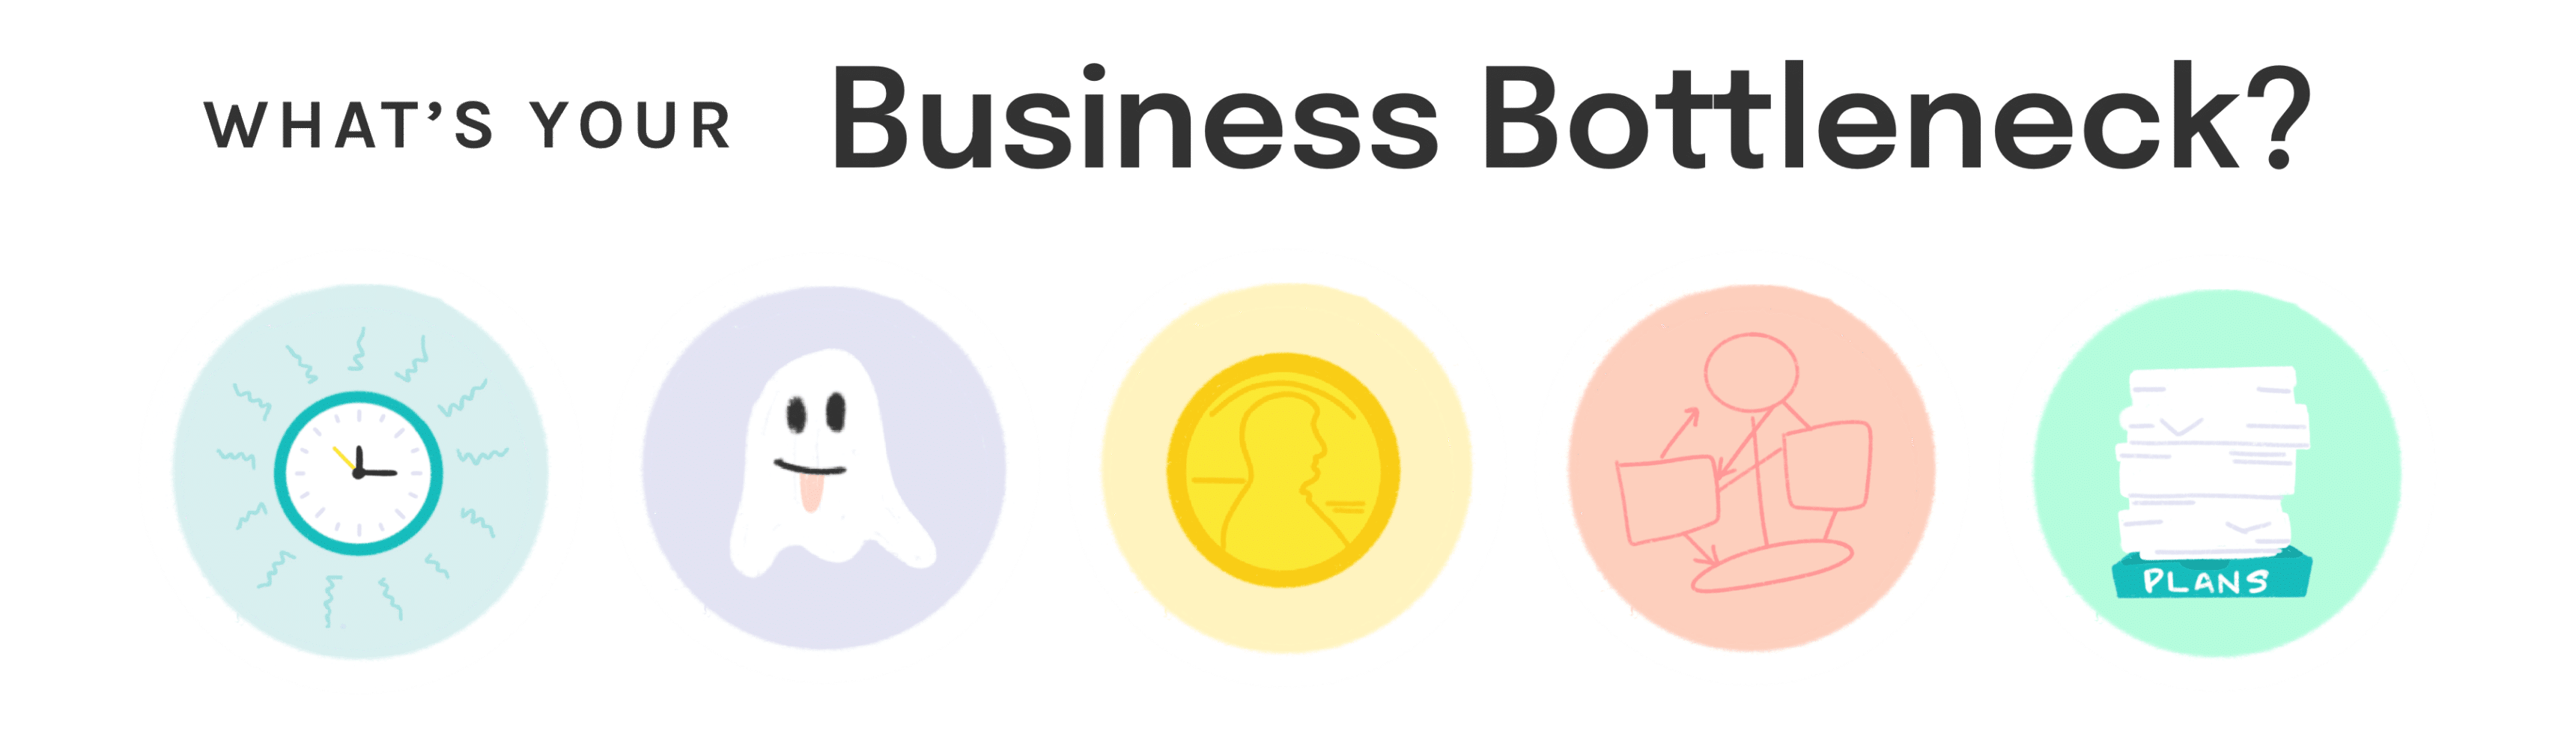 Start A Business With No Money And Ideas